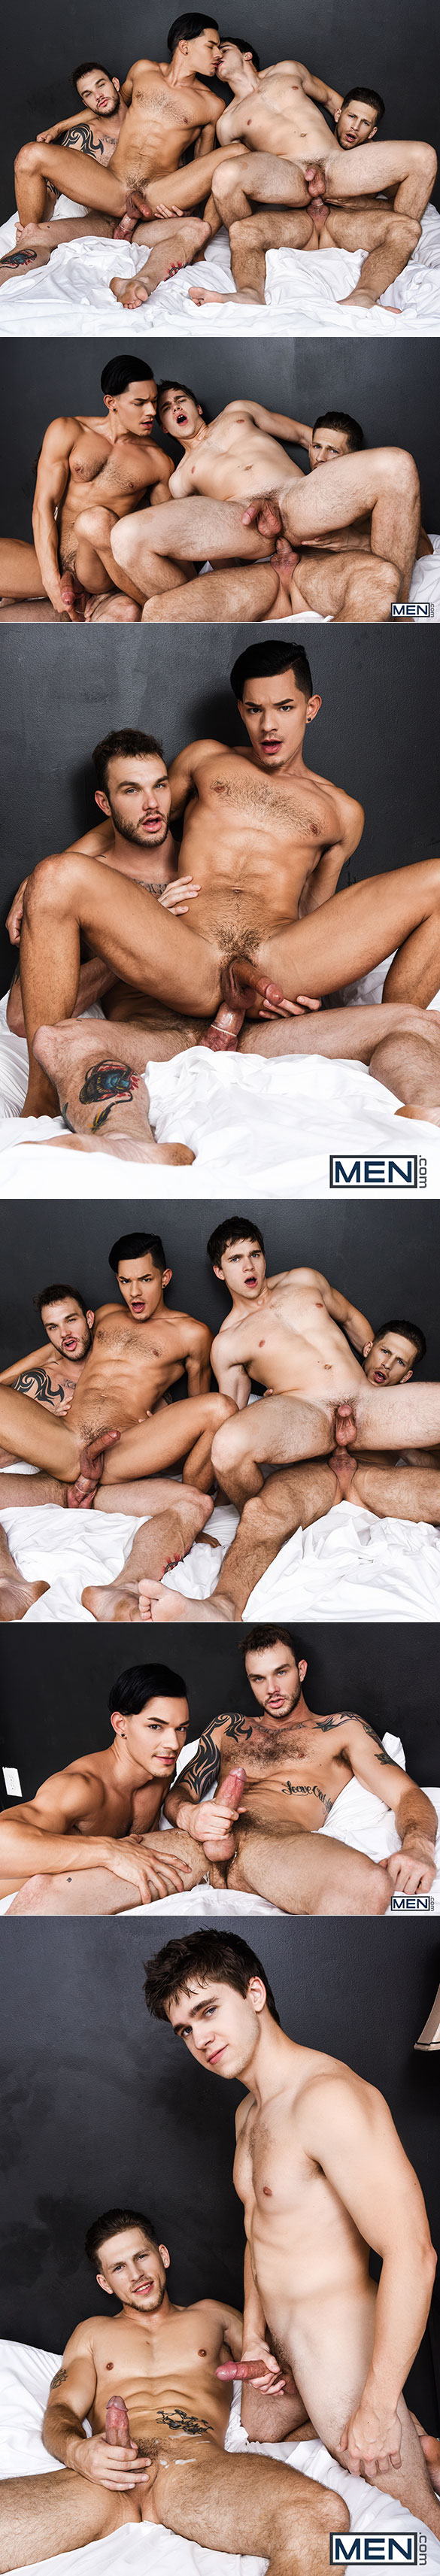 "Men.com: Cliff Jensen and Roman Todd fuck Will Braun and Ethan Slade in ""Fuck Me Silly, Part 3"""